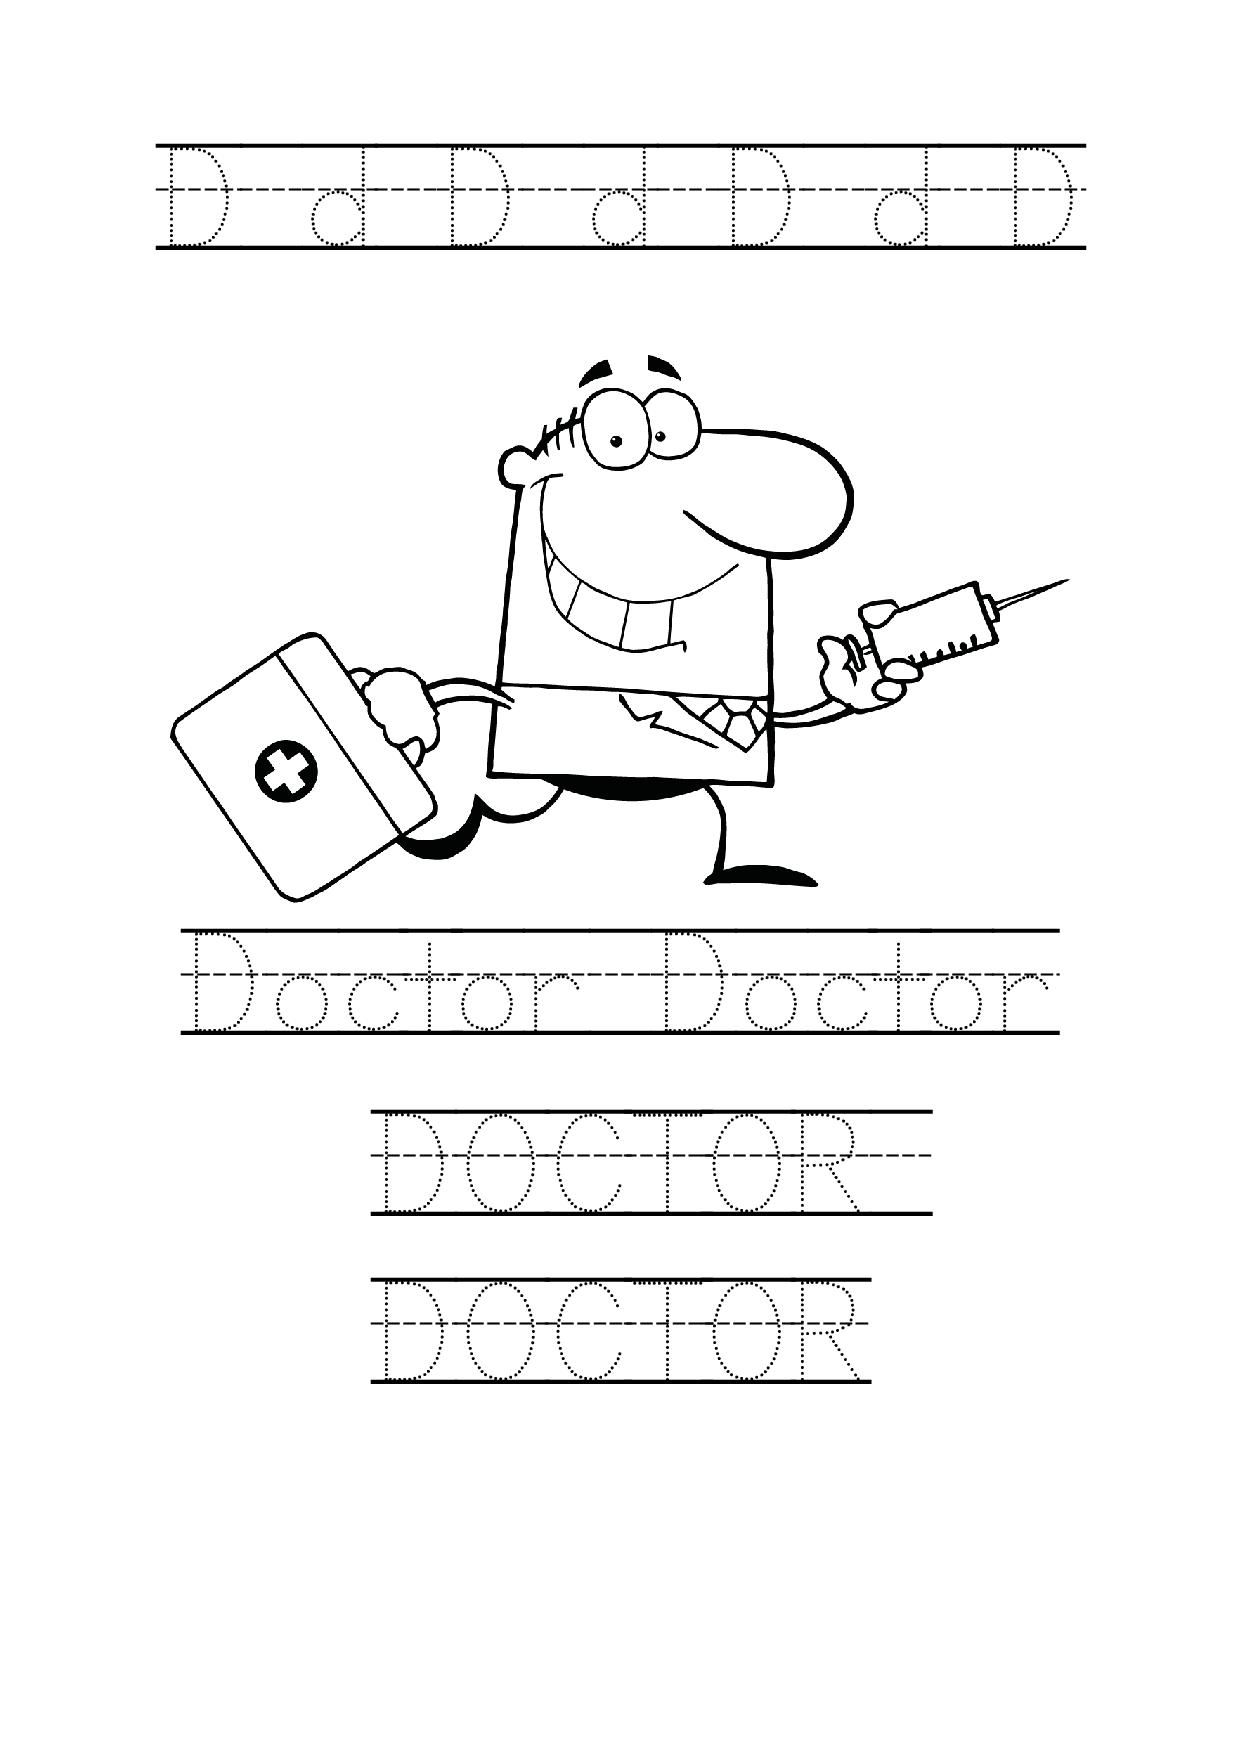 Preschool coloring games online free - Tracing Word Doctor Worksheet Coloring Page For Preschool Coloring Games Onlinecommunity